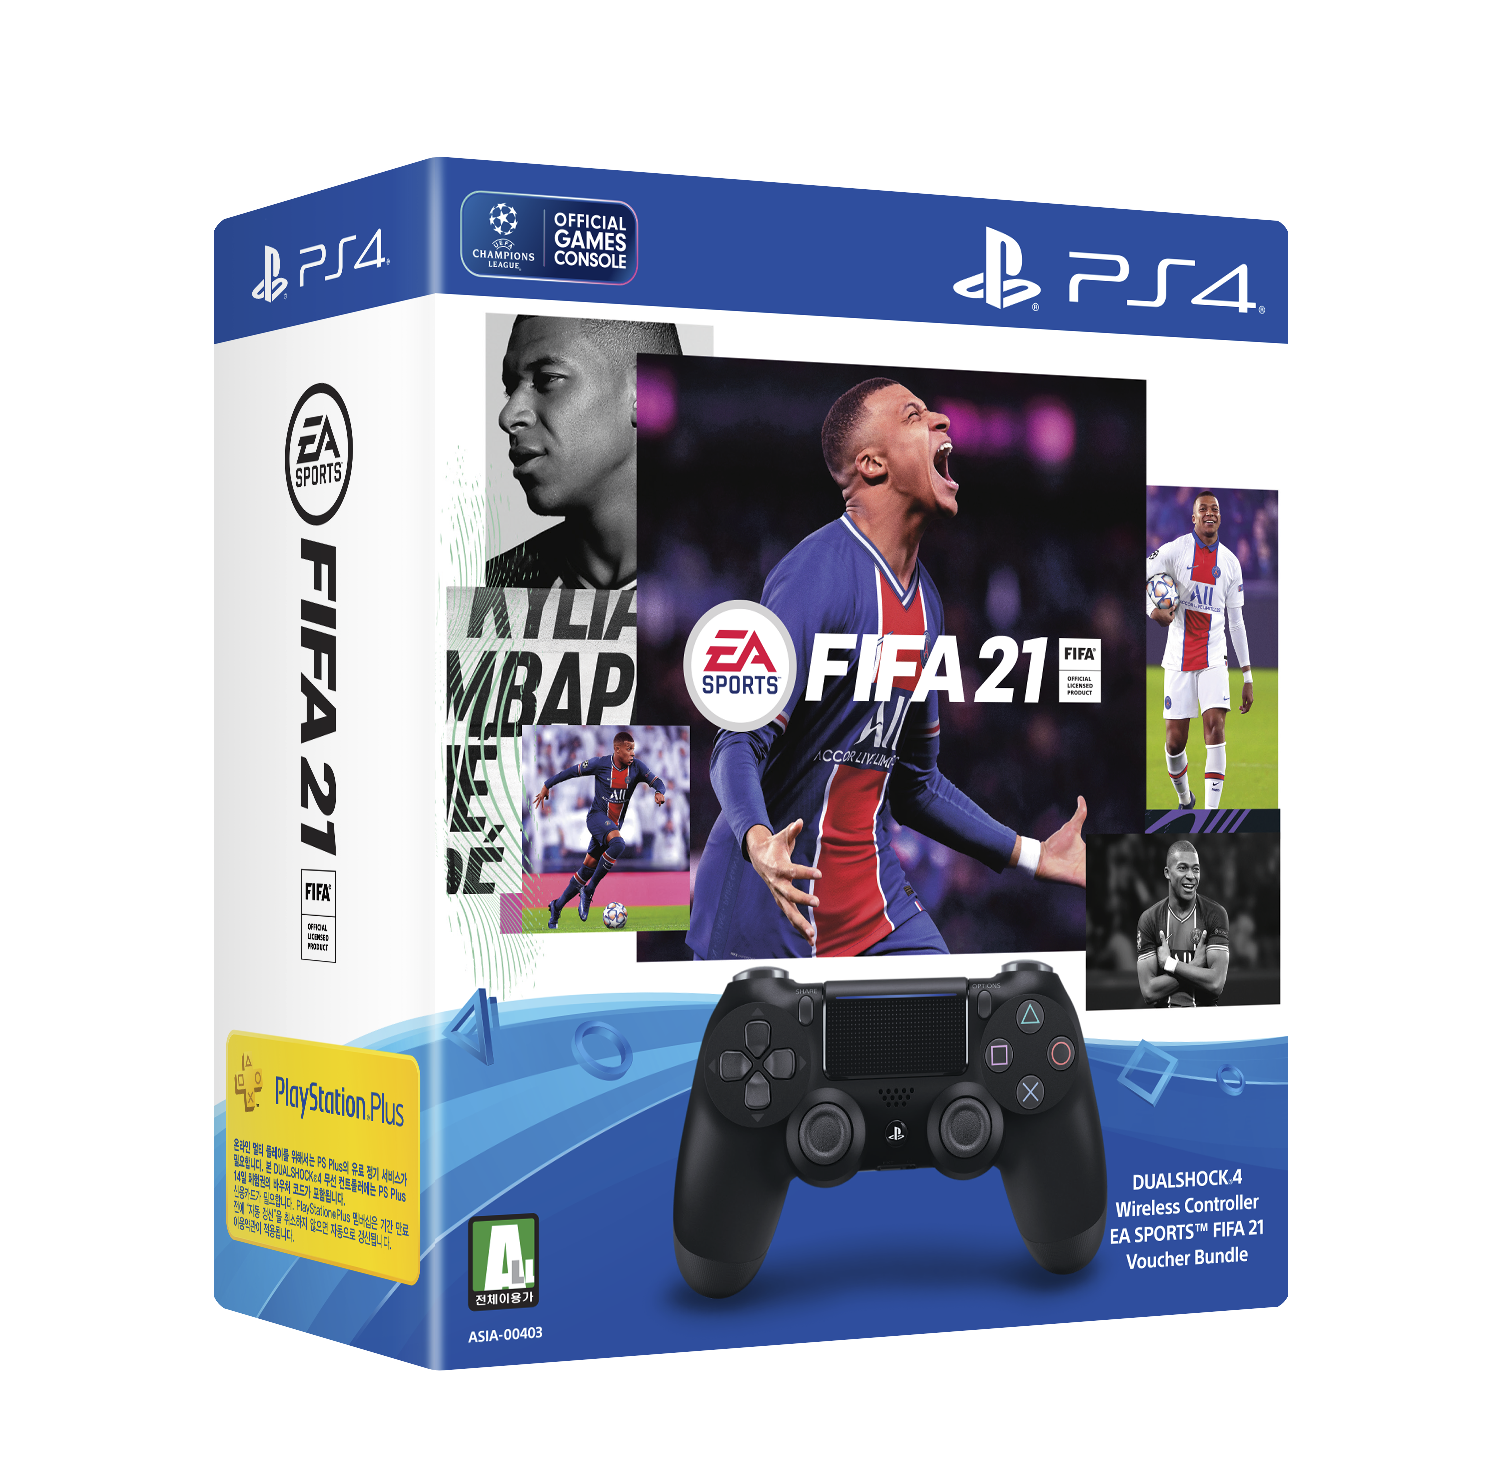 FIFA 21 DS4 번들 이미지